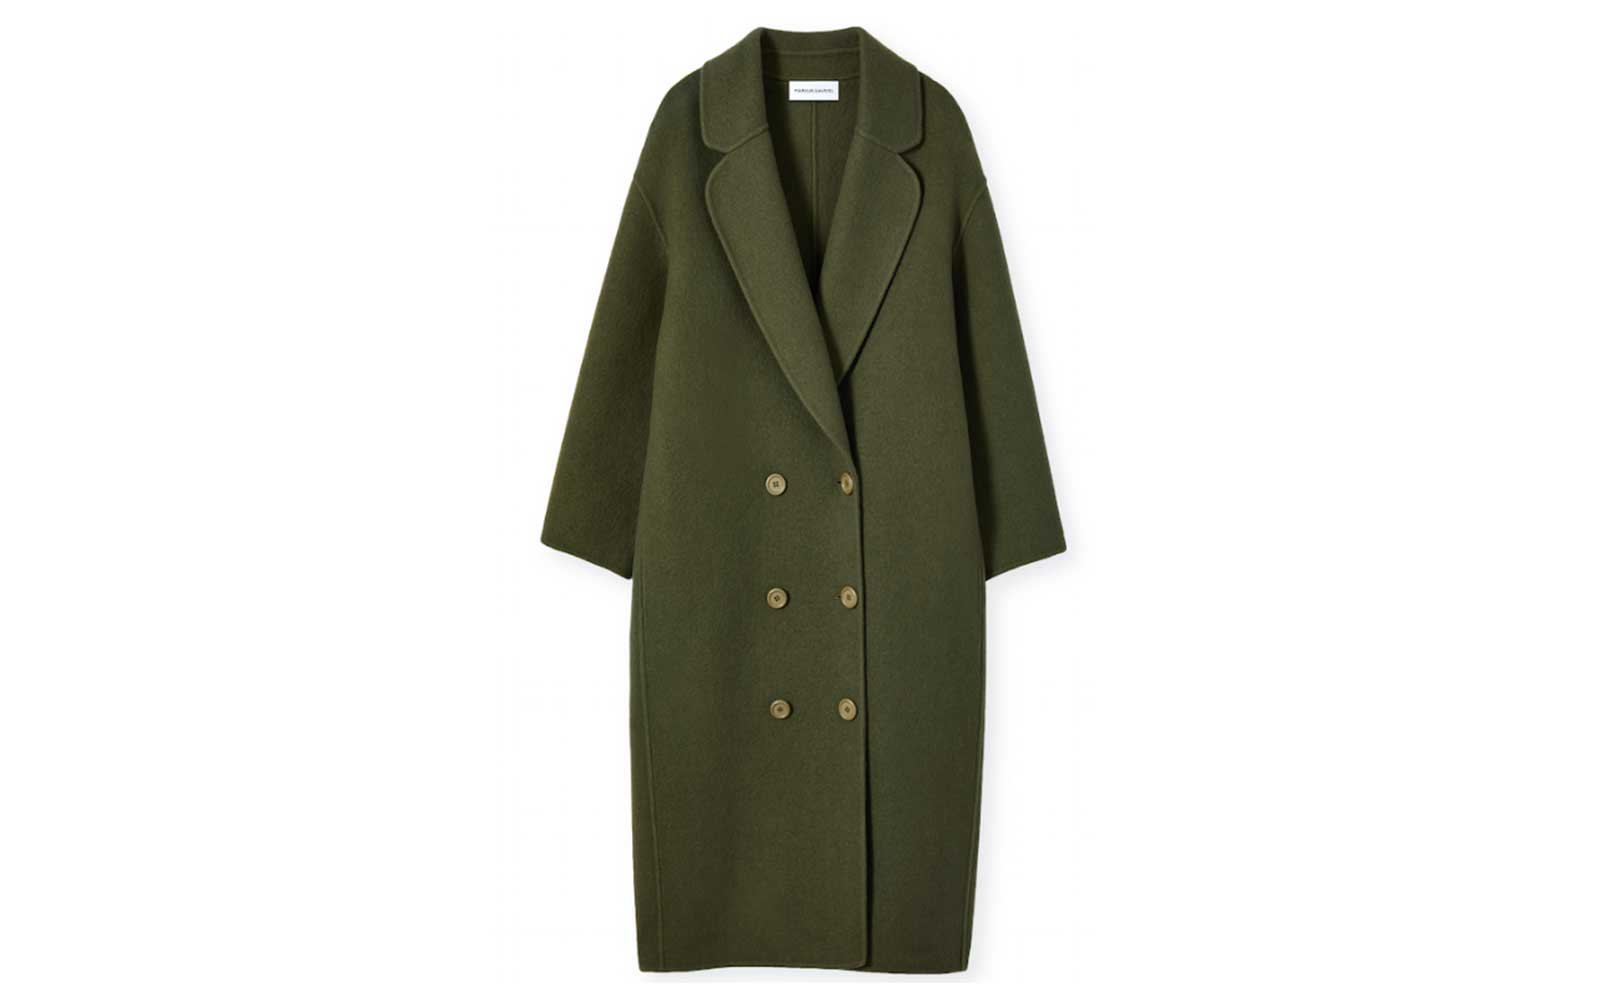 Wool overcoat by Mansur Gavriel